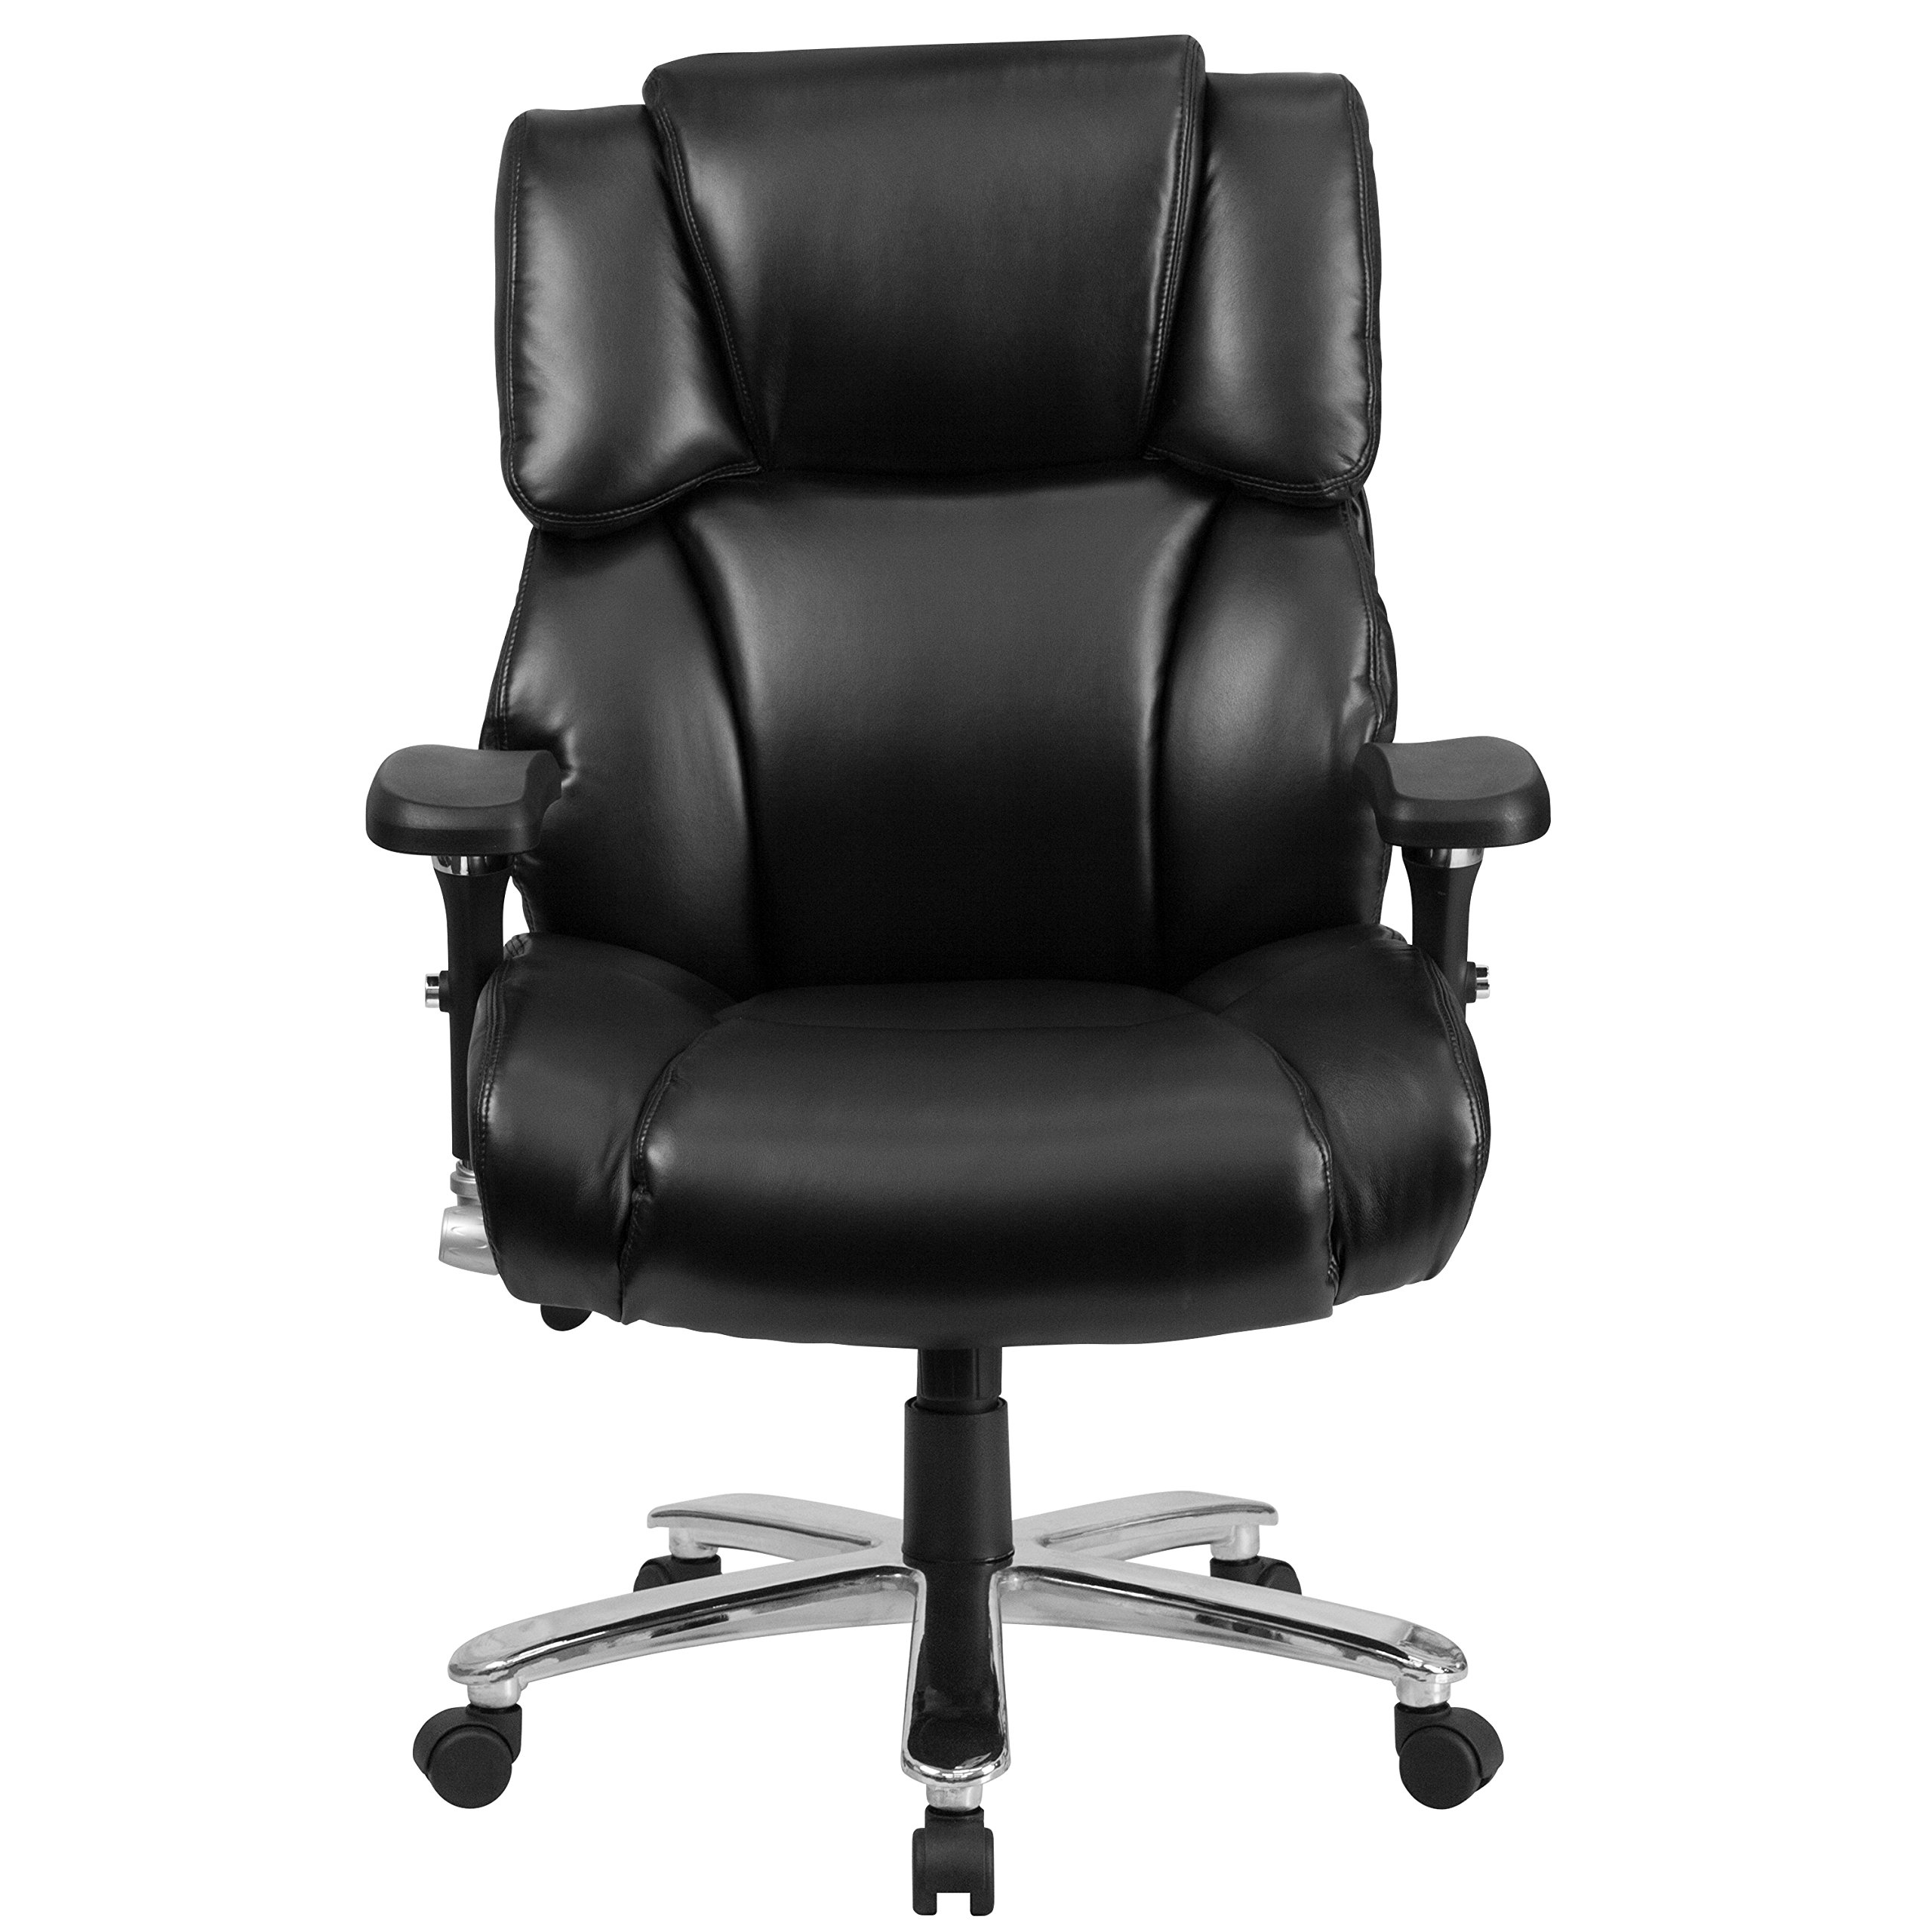 Flash Furniture HERCULES Series 24/7 Intensive Use Big & Tall 400 lb. Rated Black Leather Executive Swivel Chair with Lumbar Knob by Flash Furniture (Image #4)